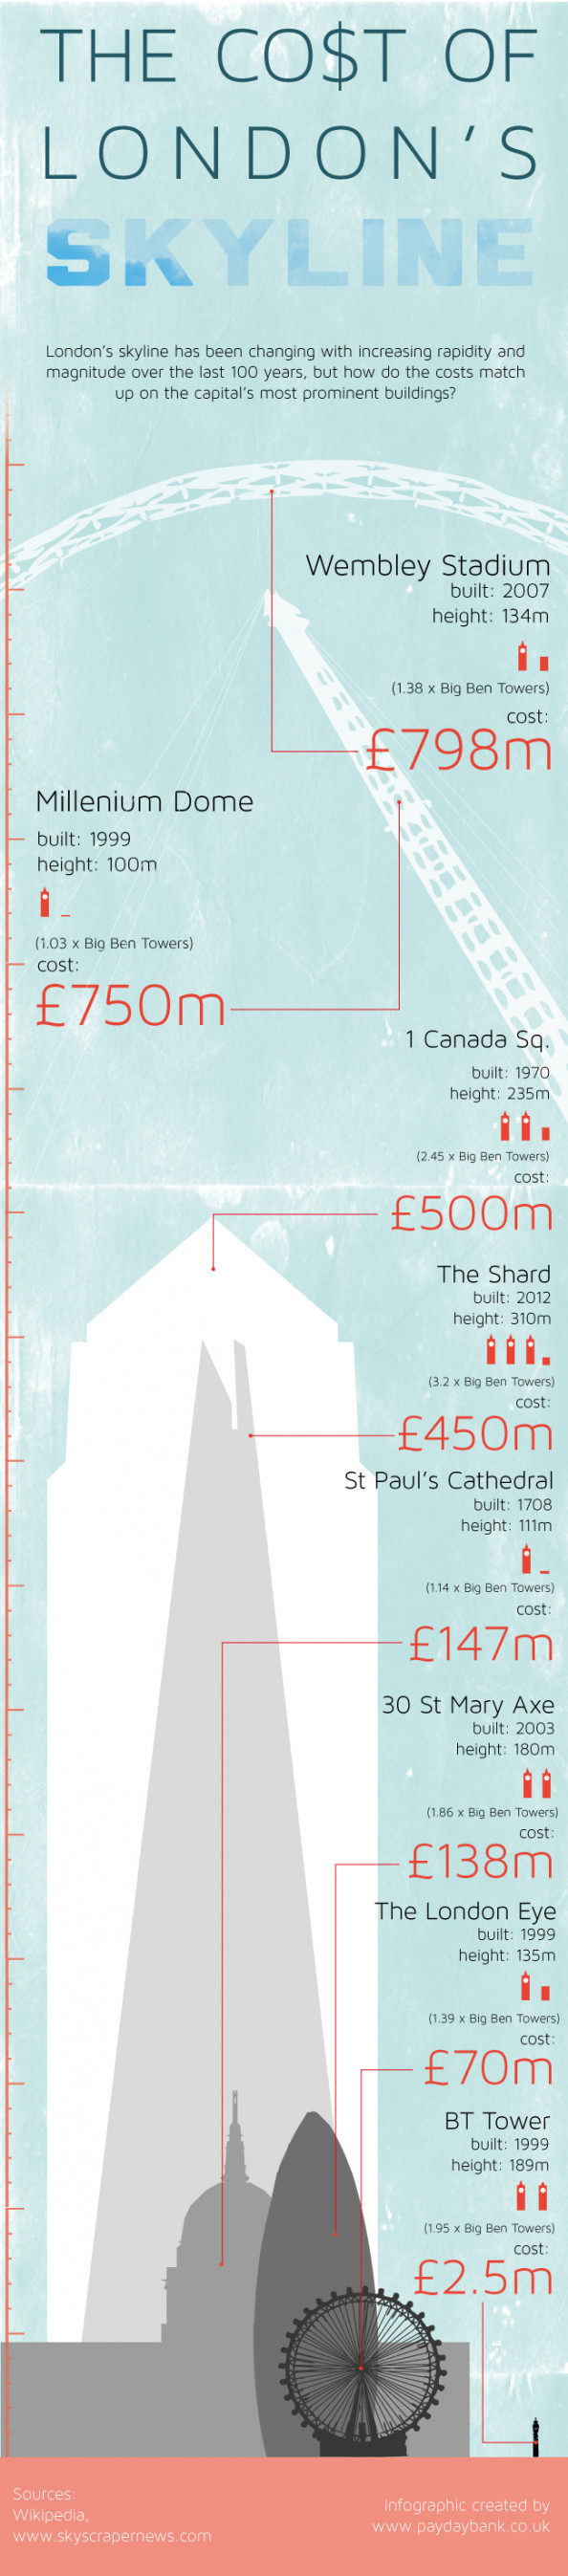 The Cost of London's Skyline Infographic